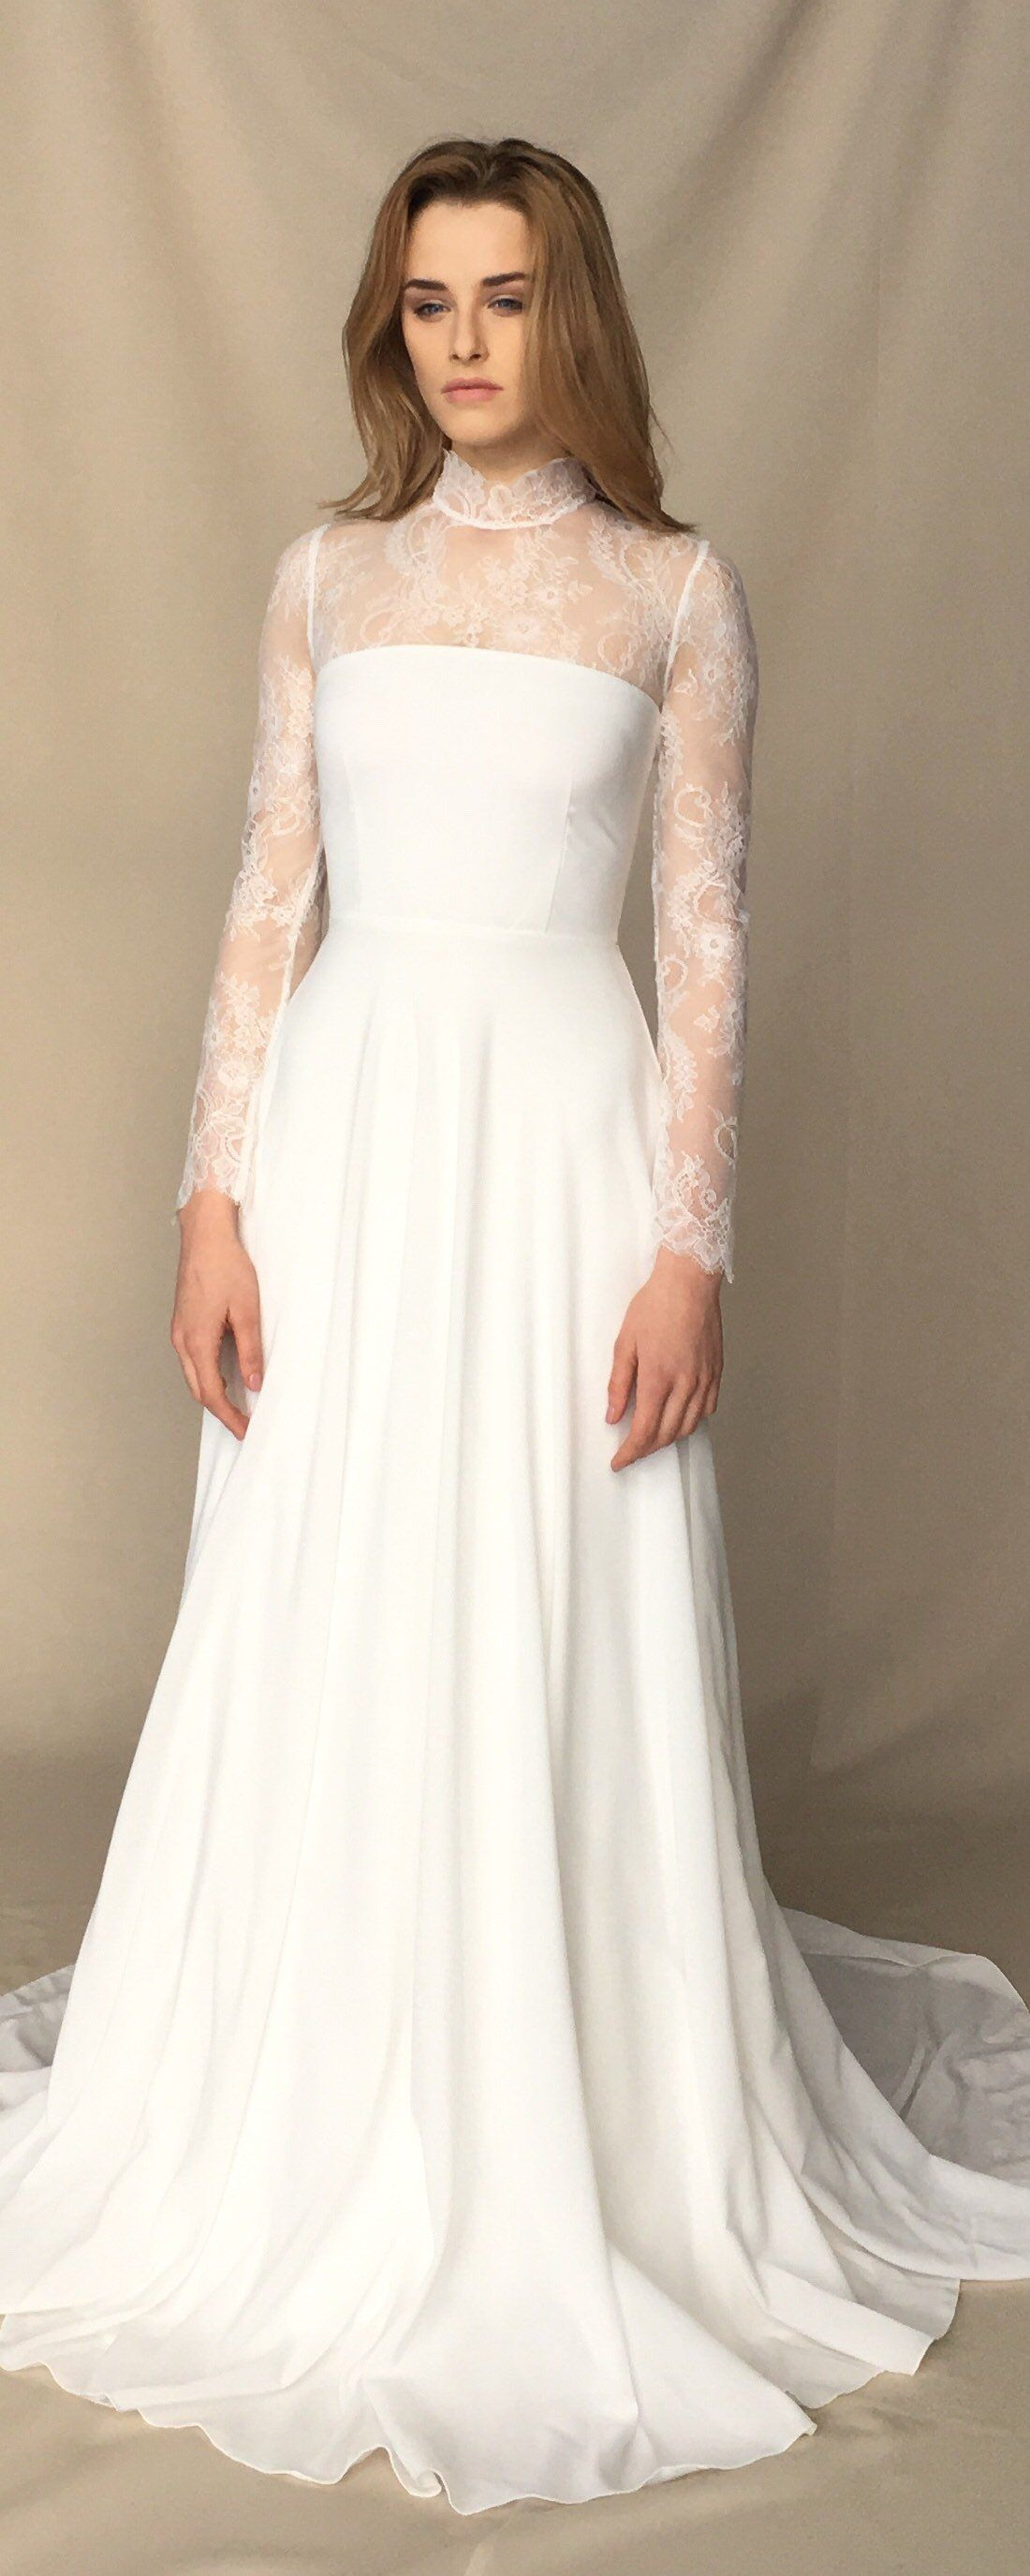 Lace Wedding Dress High Neck Light Ivory Wedding Gown Etsy In 2020 Lace Dress With Sleeves High Neck Wedding Dress Lace Wedding Dress With Sleeves